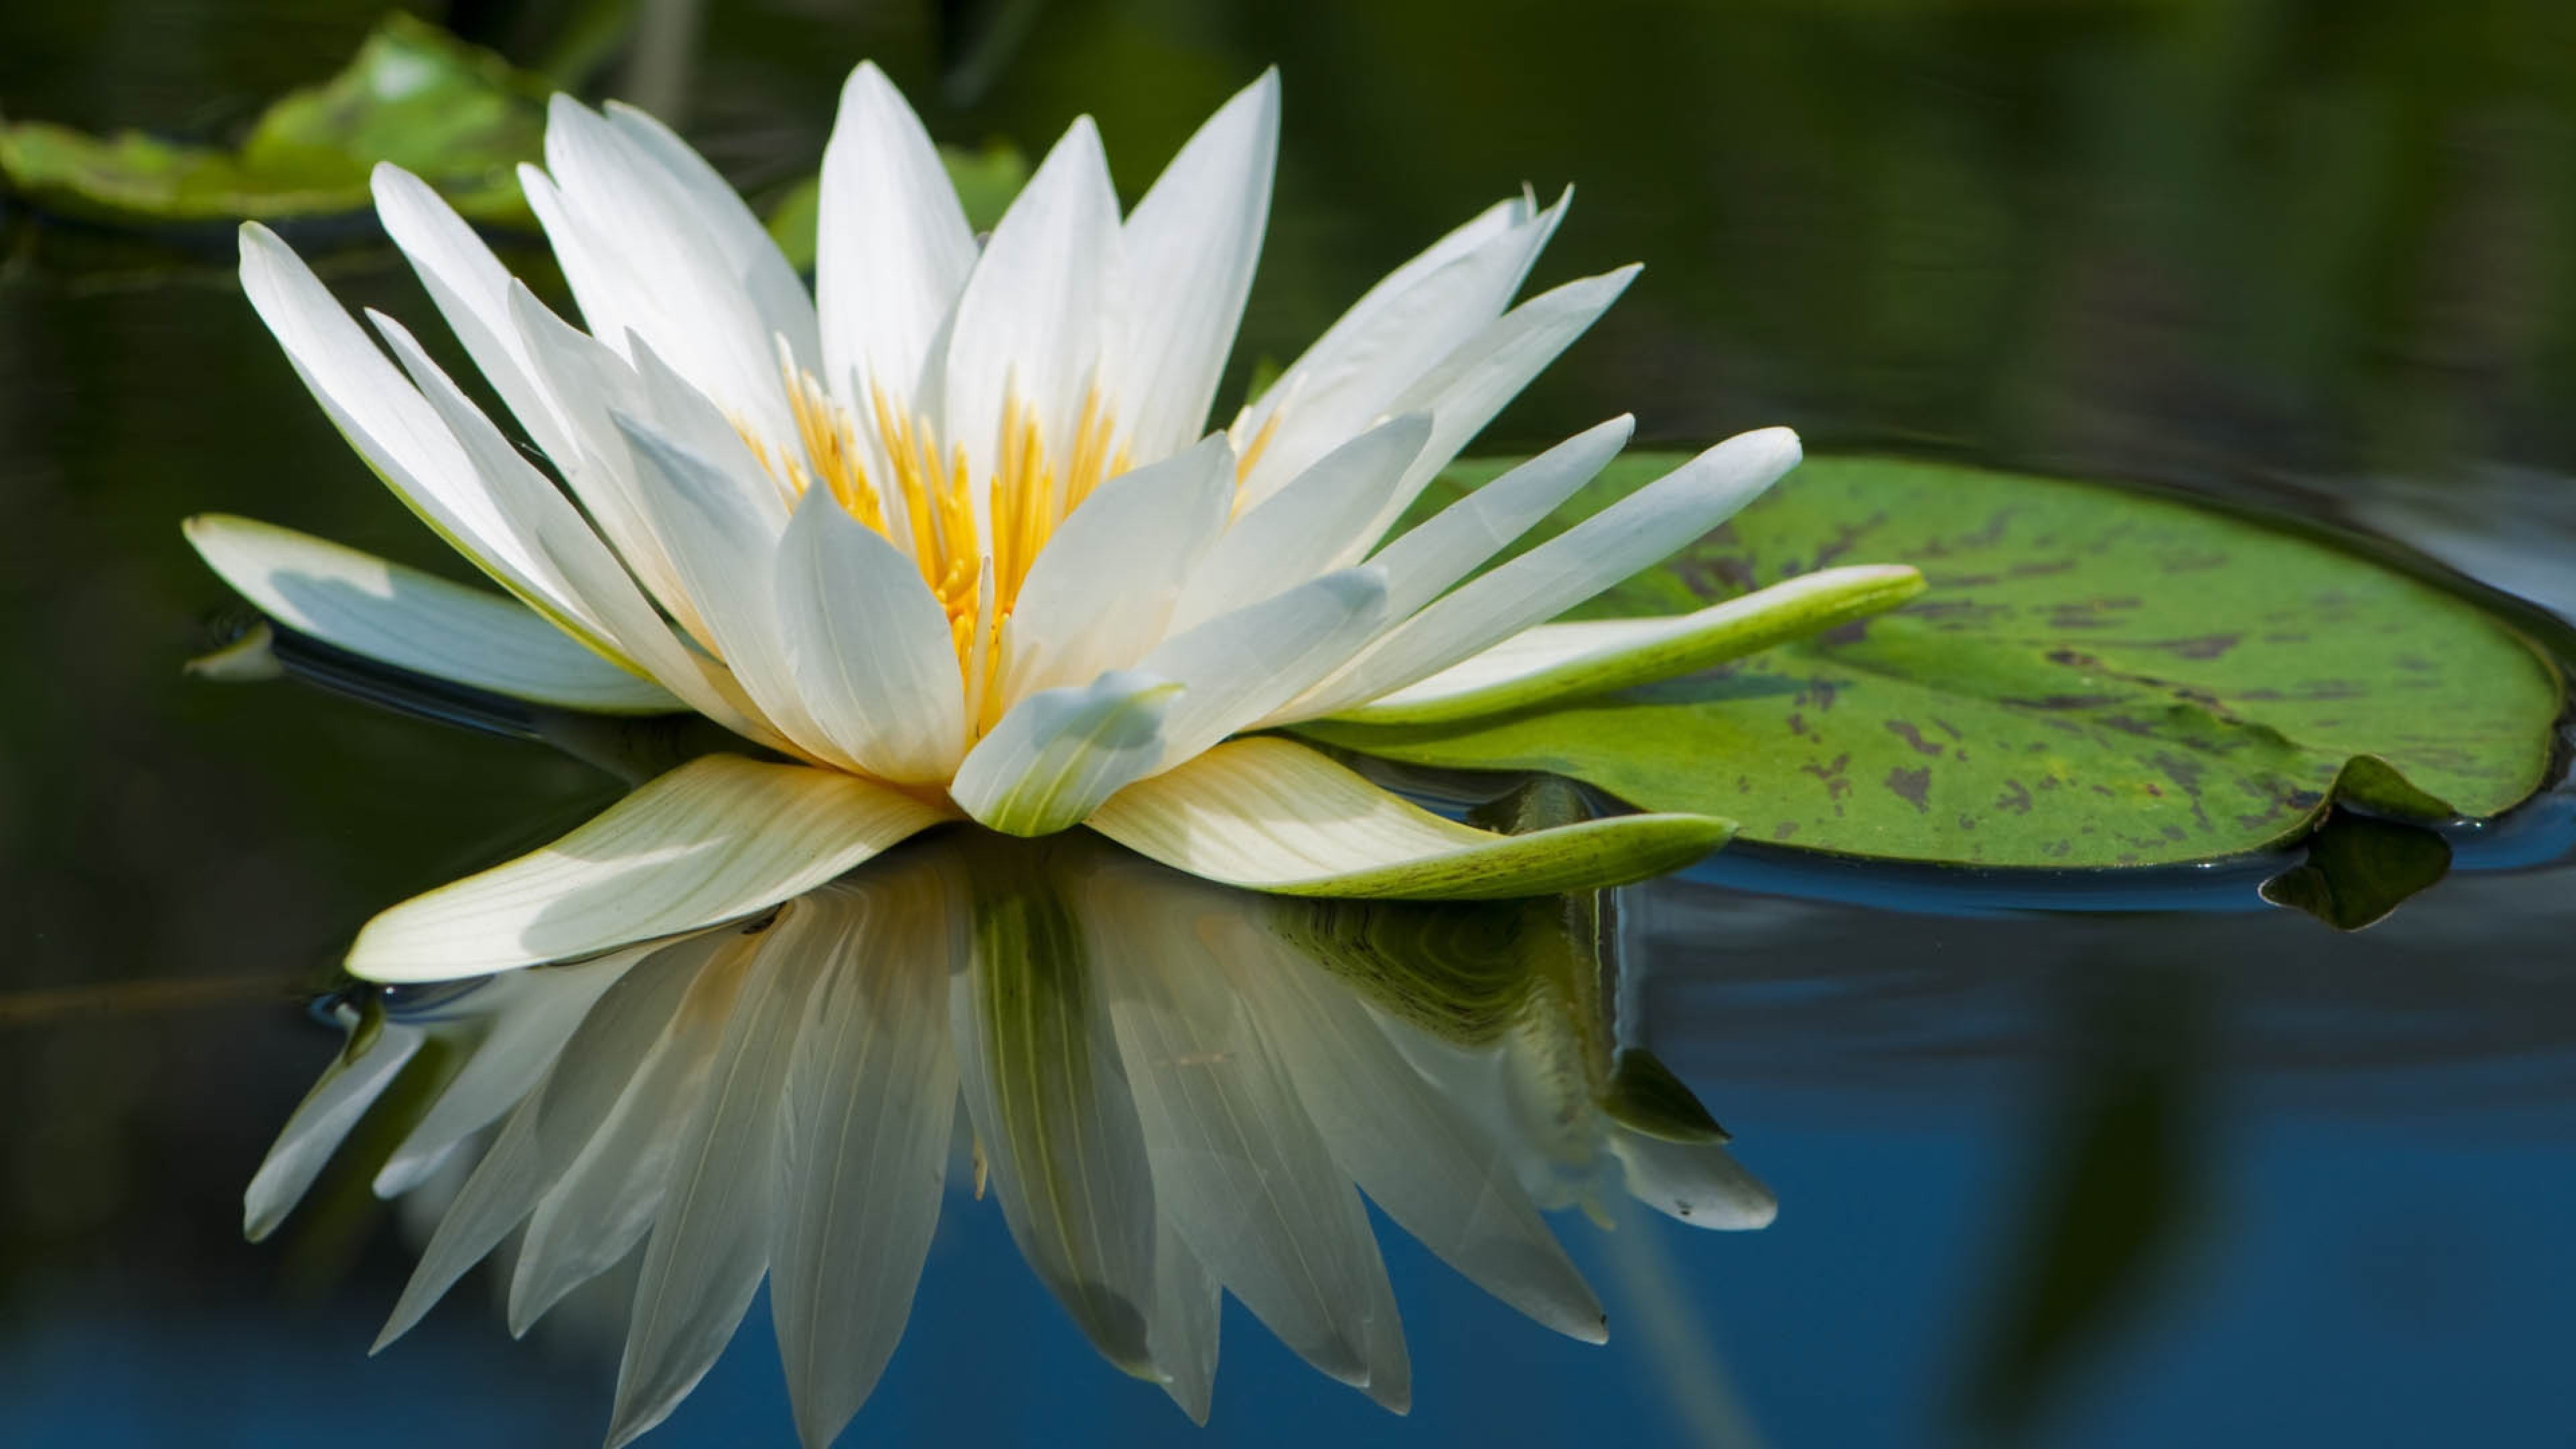 Blumenel Bastelanleitung wallpaper 3840x2160 lotus flower water petals 4k ultra